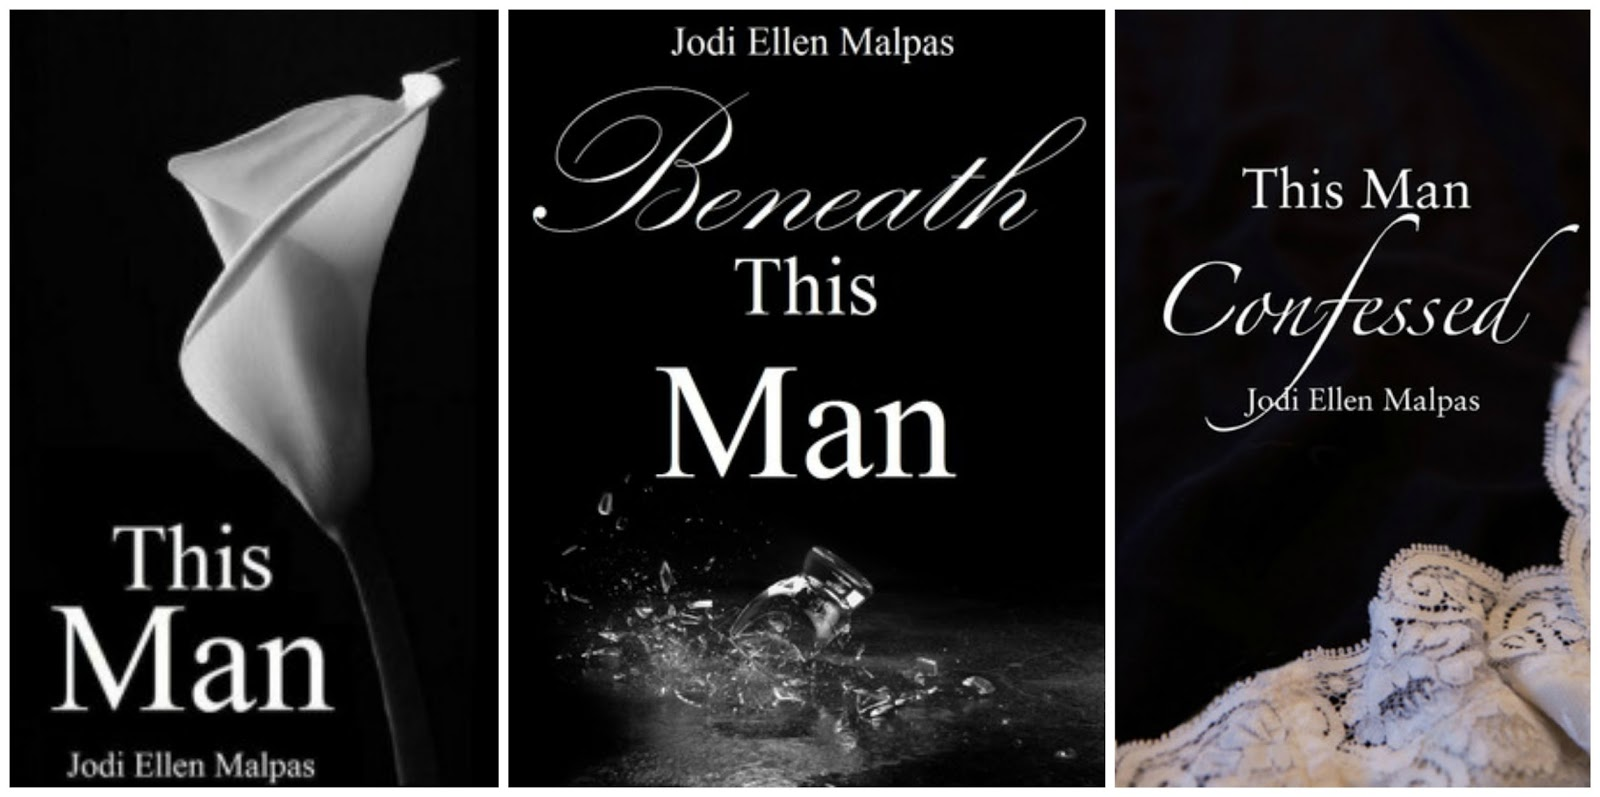 Video Interview with Jodi Ellen Malpas: Signed Book Giveaway